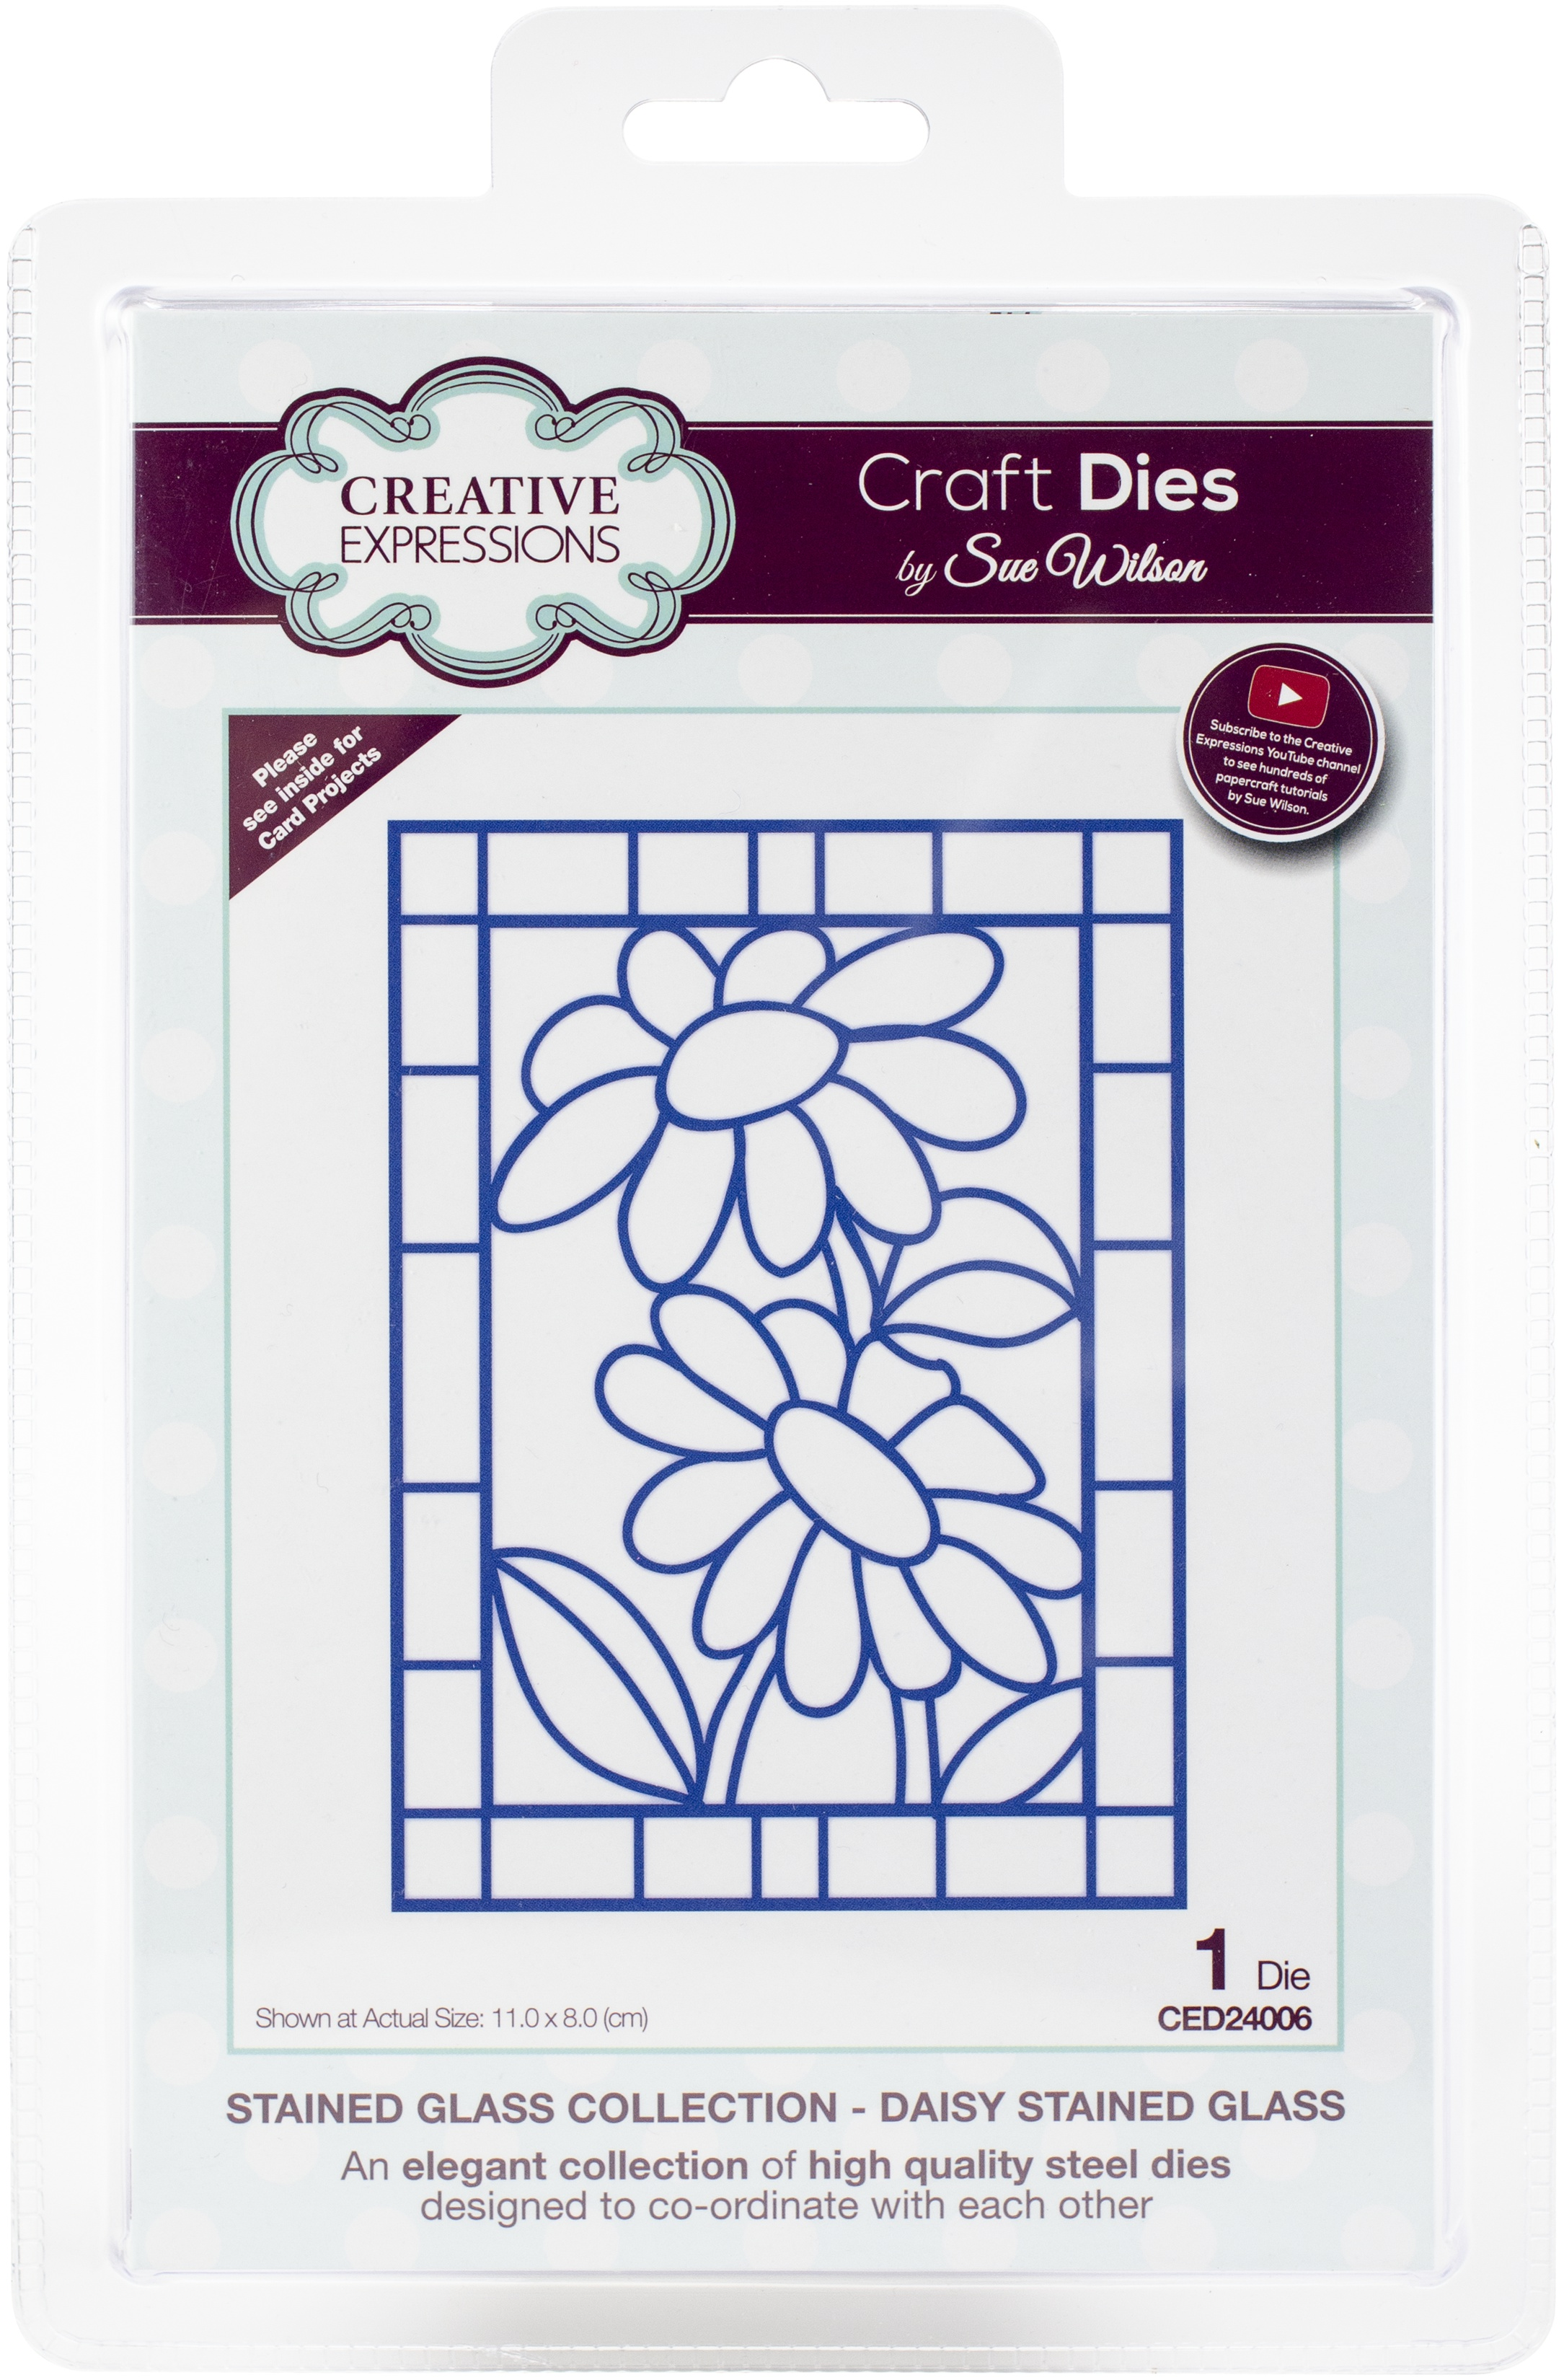 Creative Expressions Craft Dies By Sue Wilson-Daisy